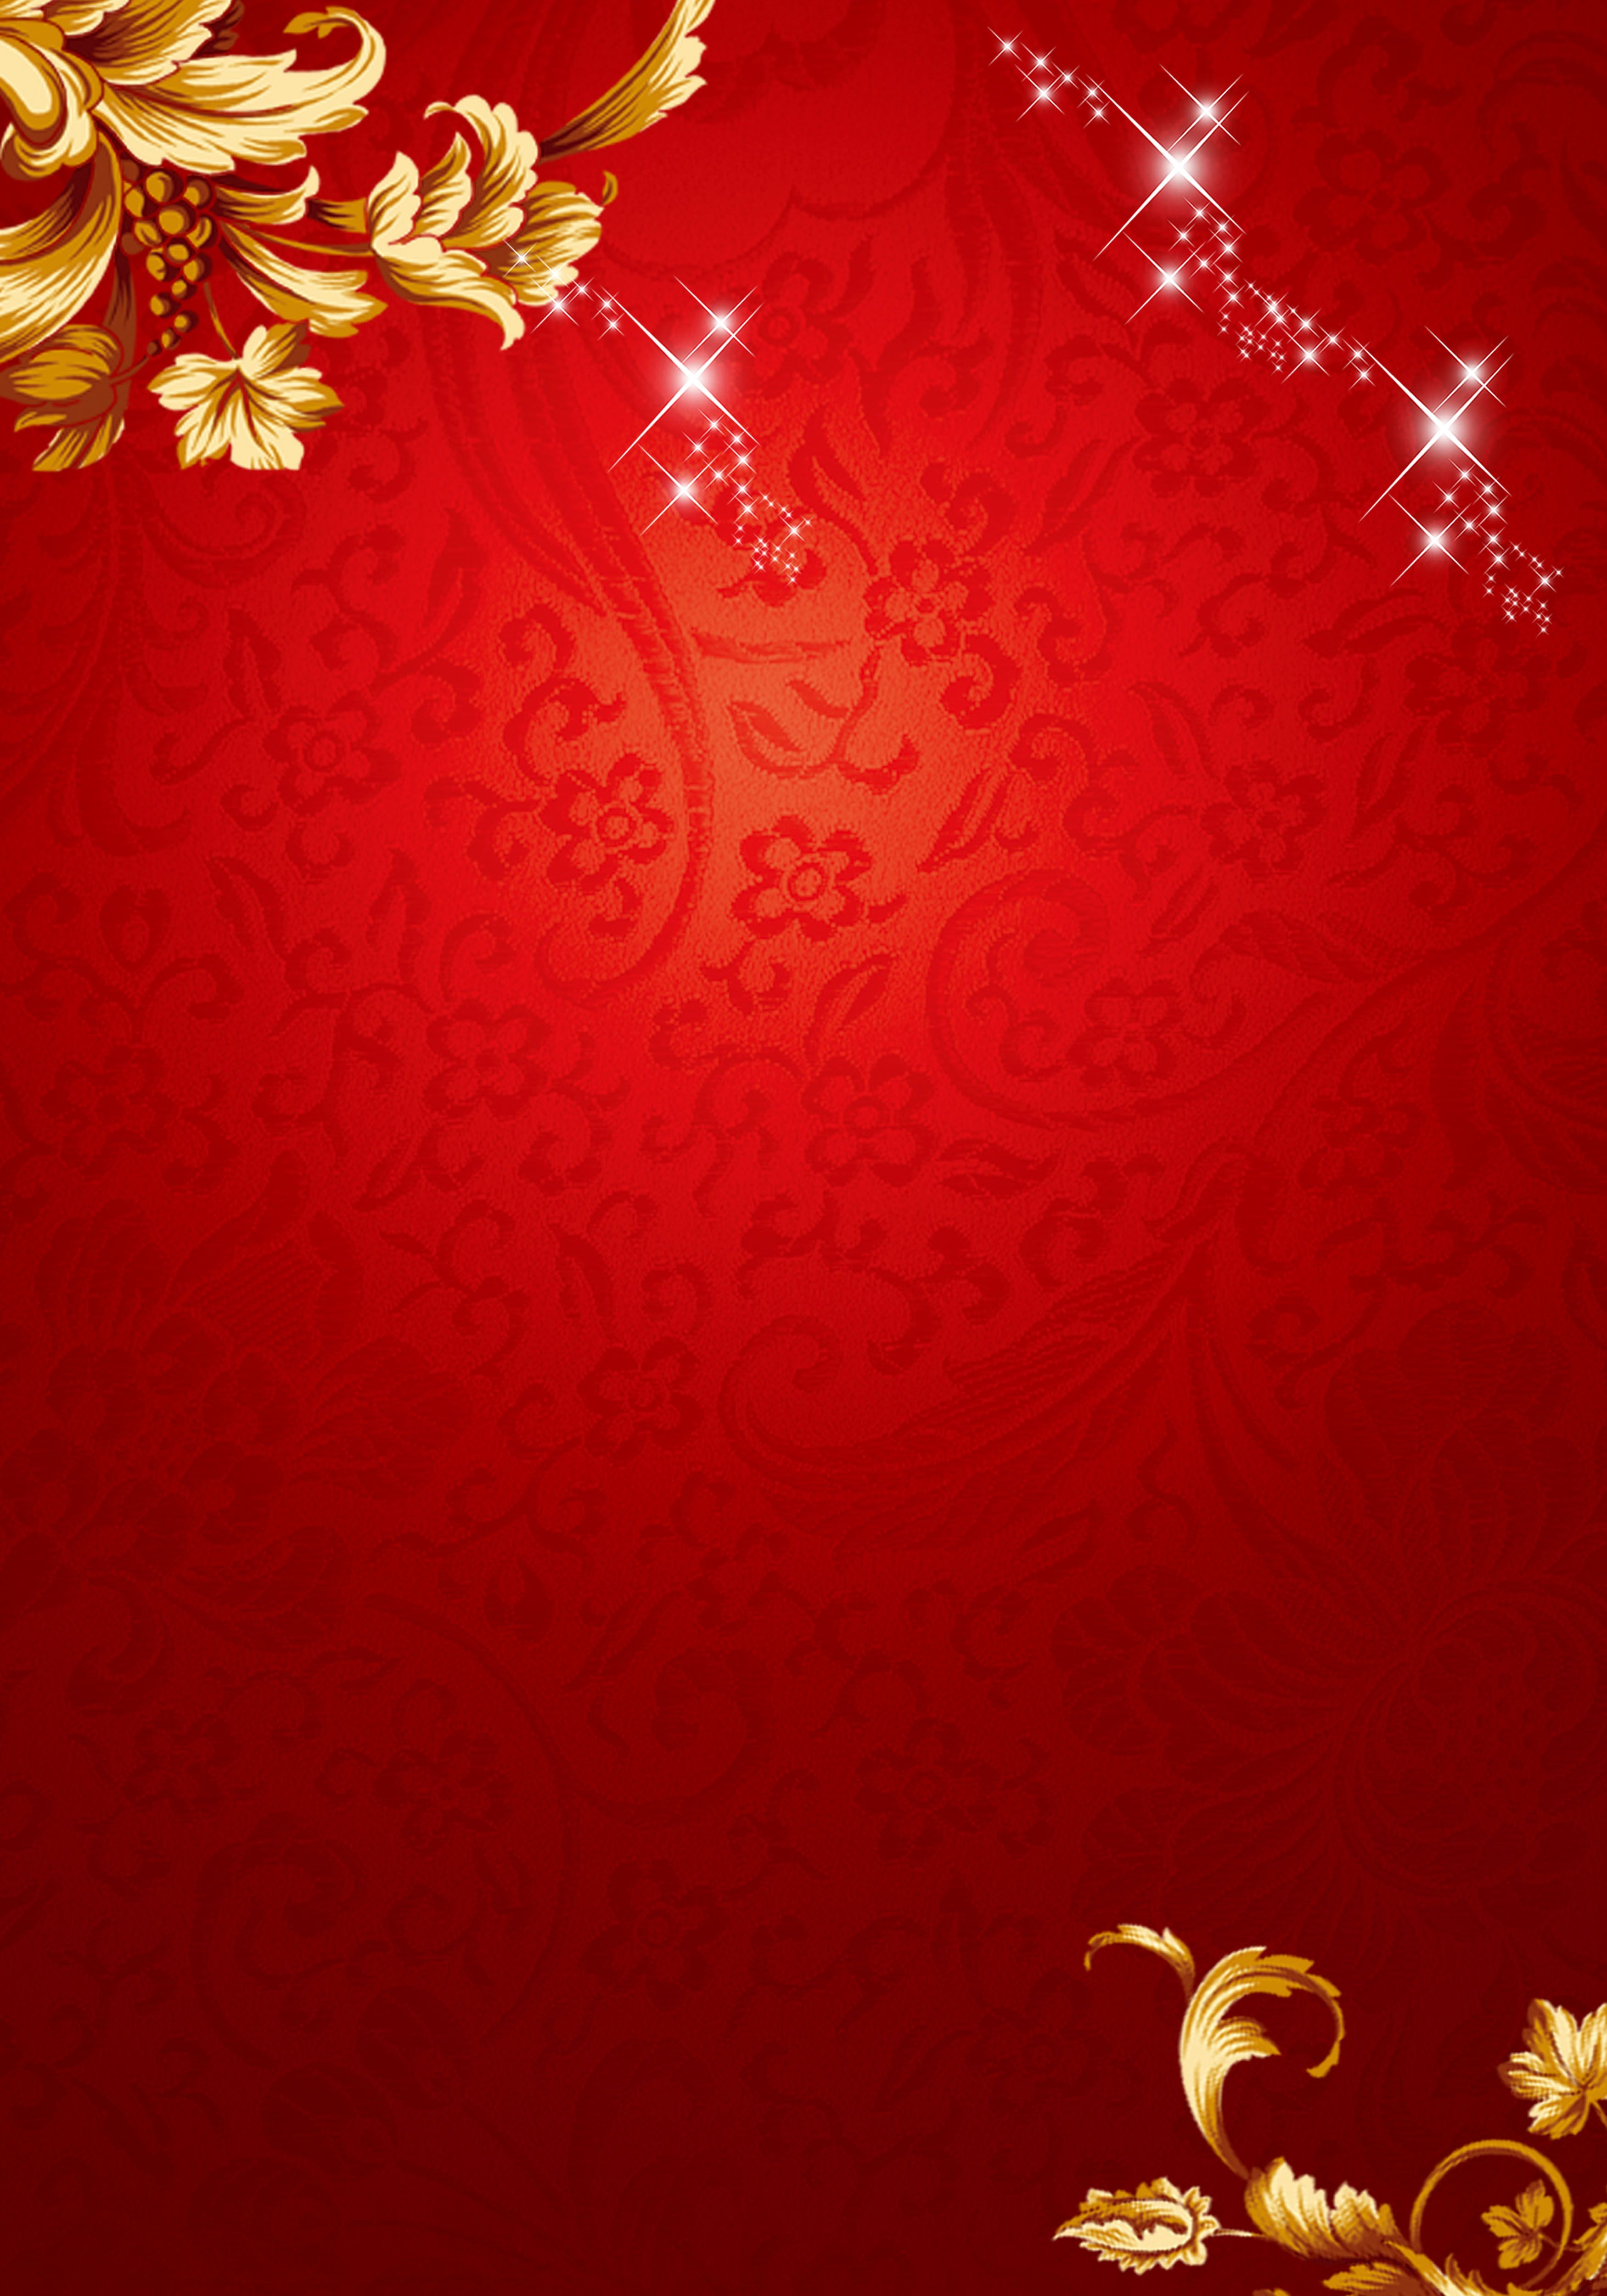 Chinese New Year Red Floral Pattern Background in 2020 3500x5000